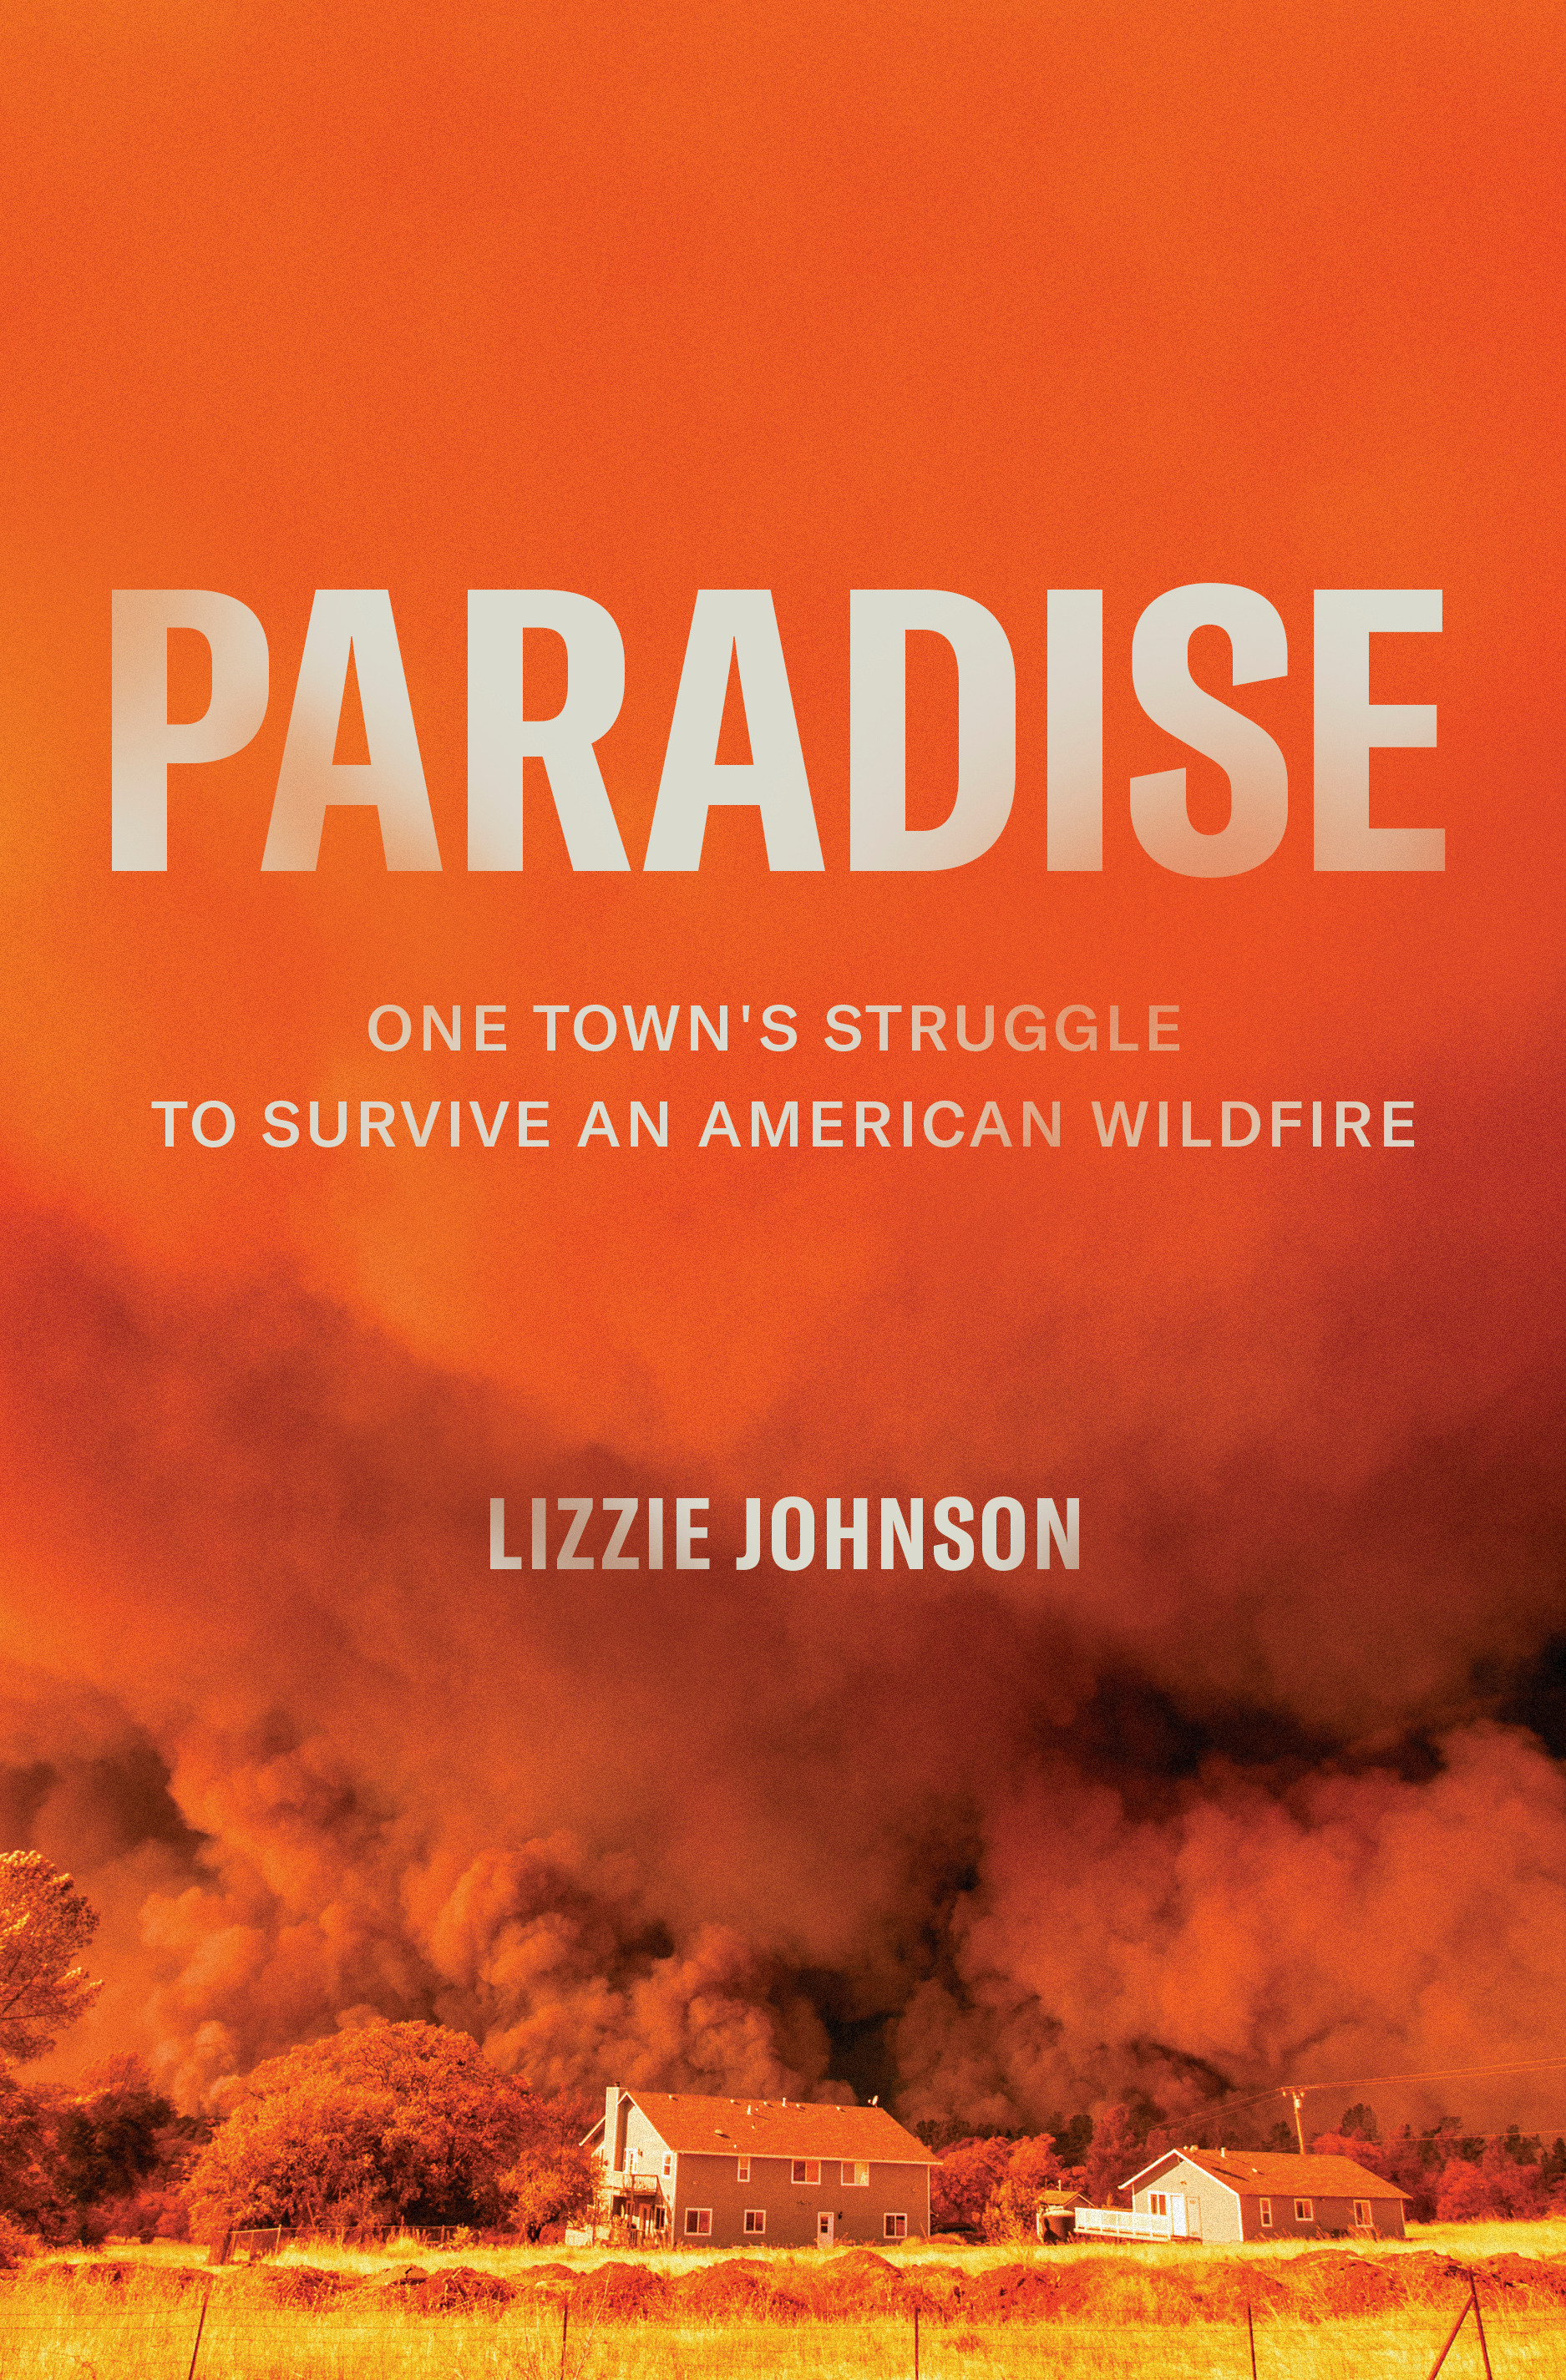 Paradise: One Town's Struggle to Survive an American Wildfire